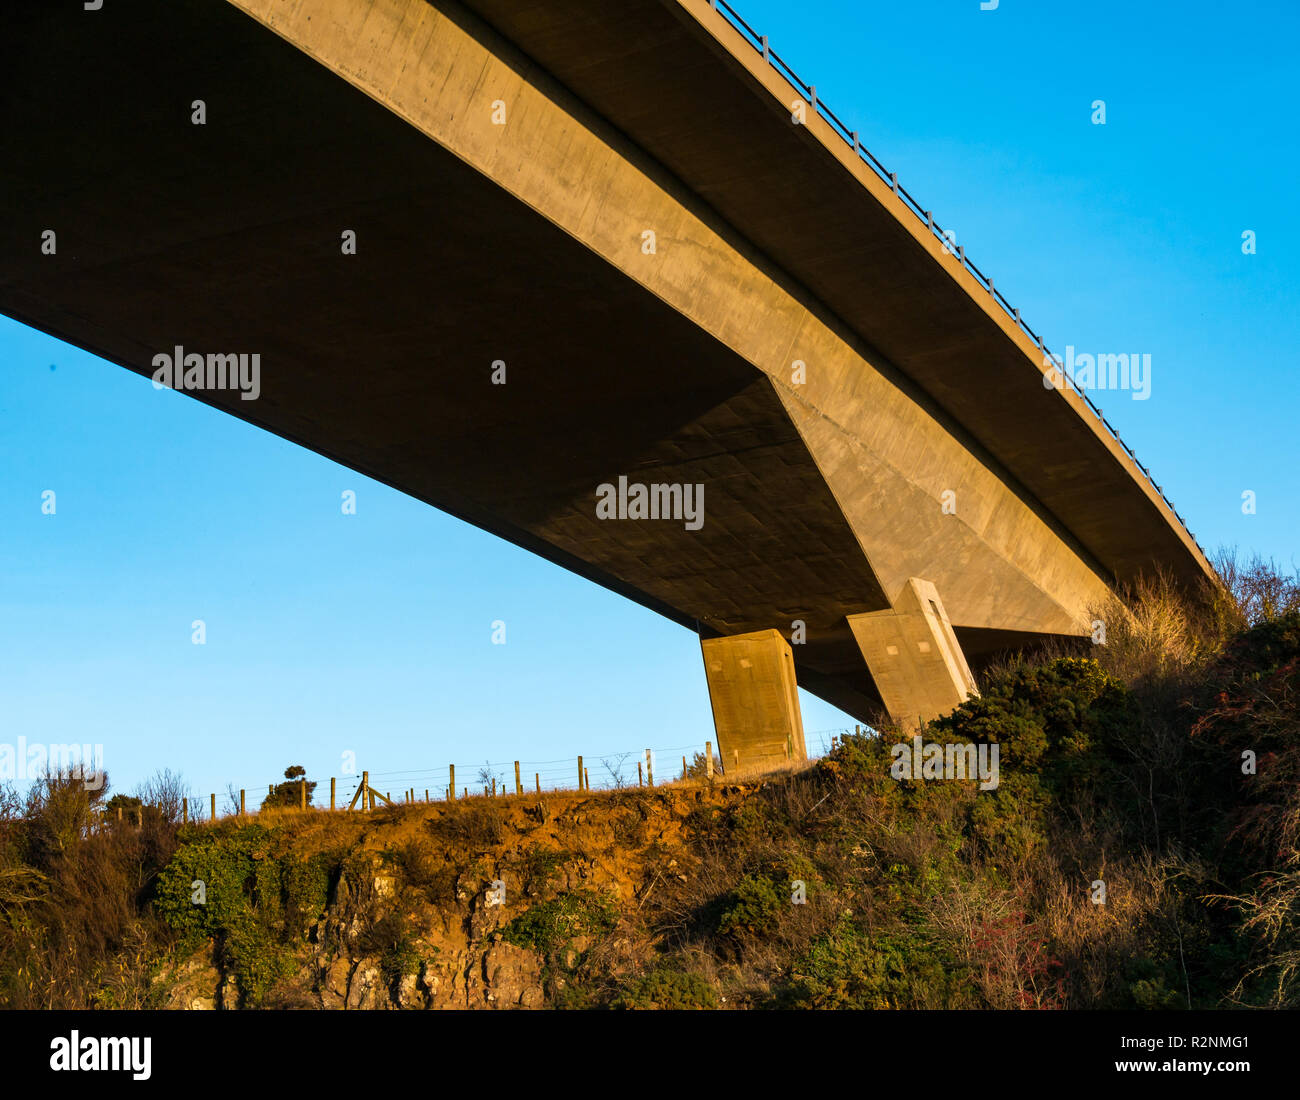 River Tyne concrete flyover bridge by Balfour Beatty Civil Engineering on A1 dual carriageway from below, East Lothian, Scotland, UK - Stock Image